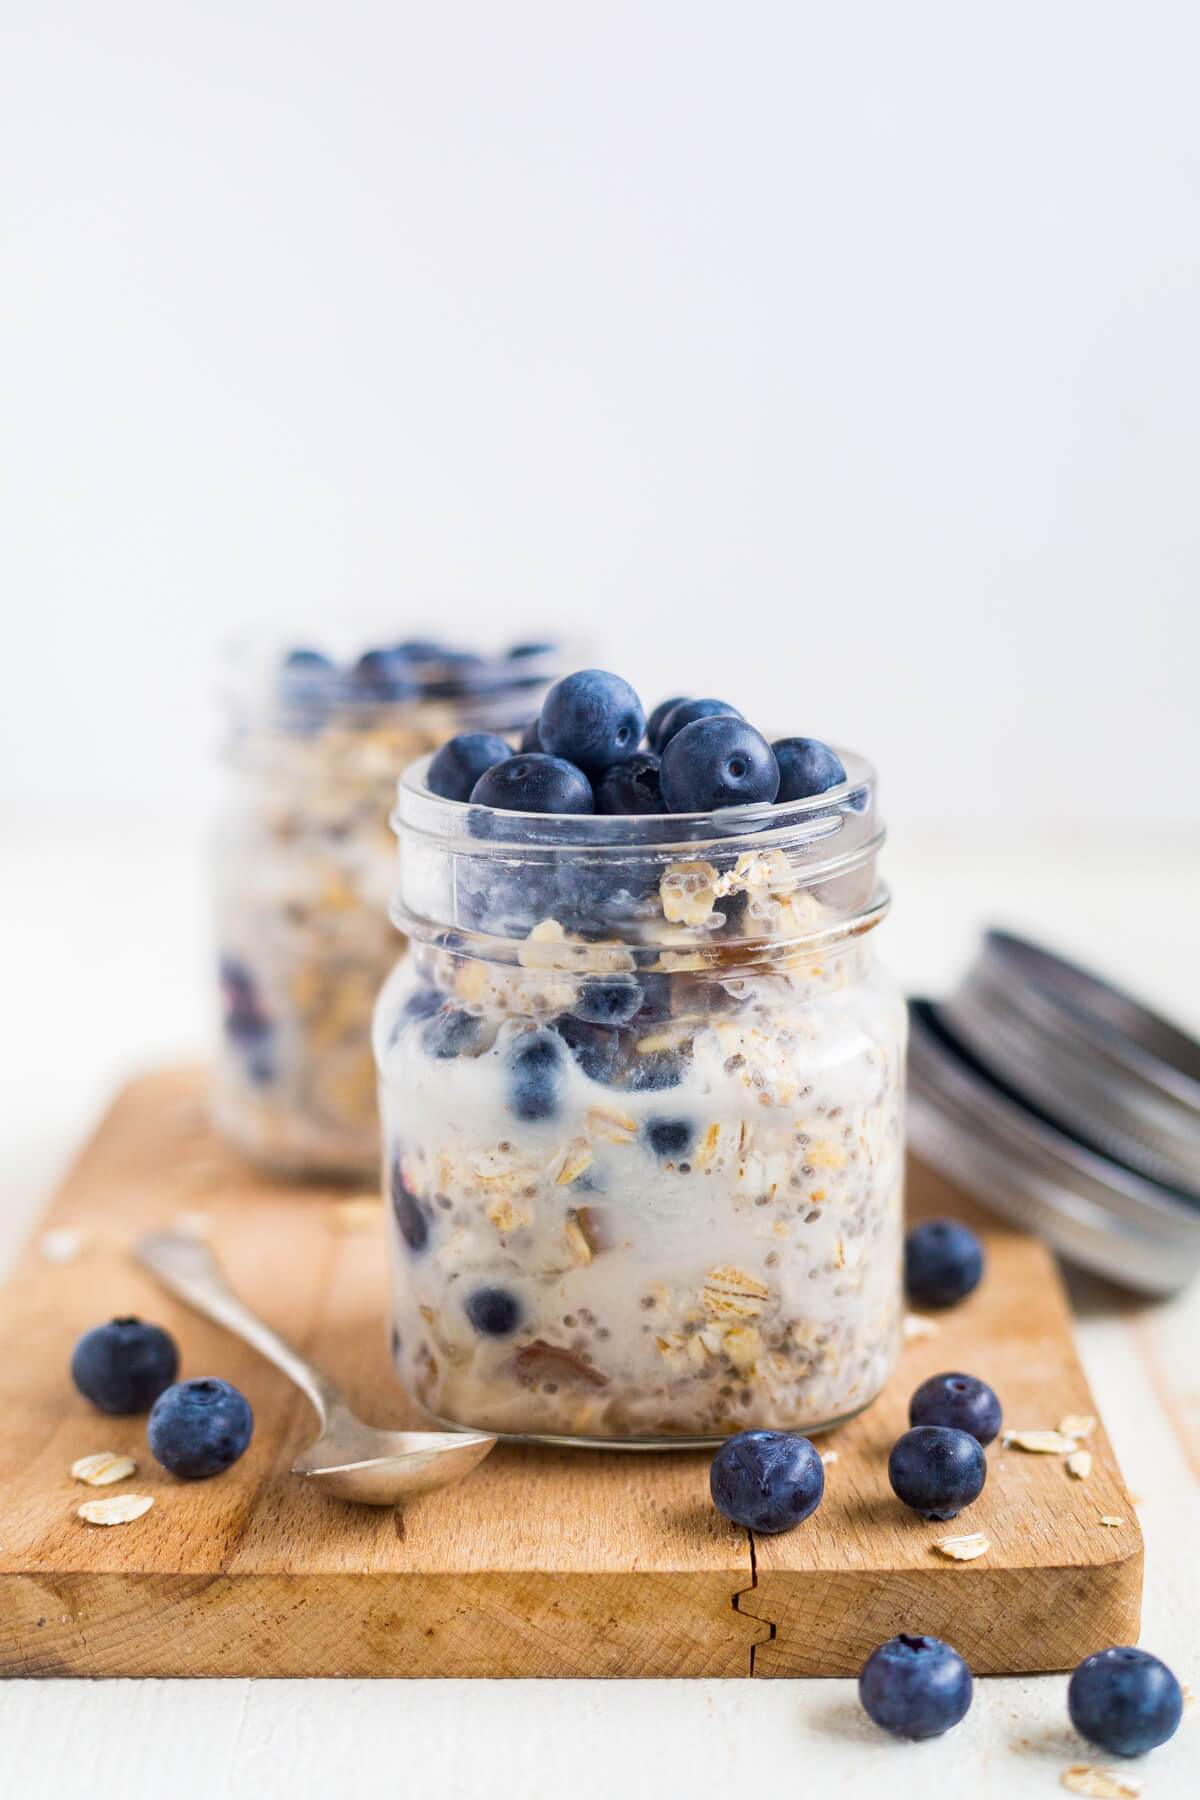 blueberry-overnight-oats-11.jpg